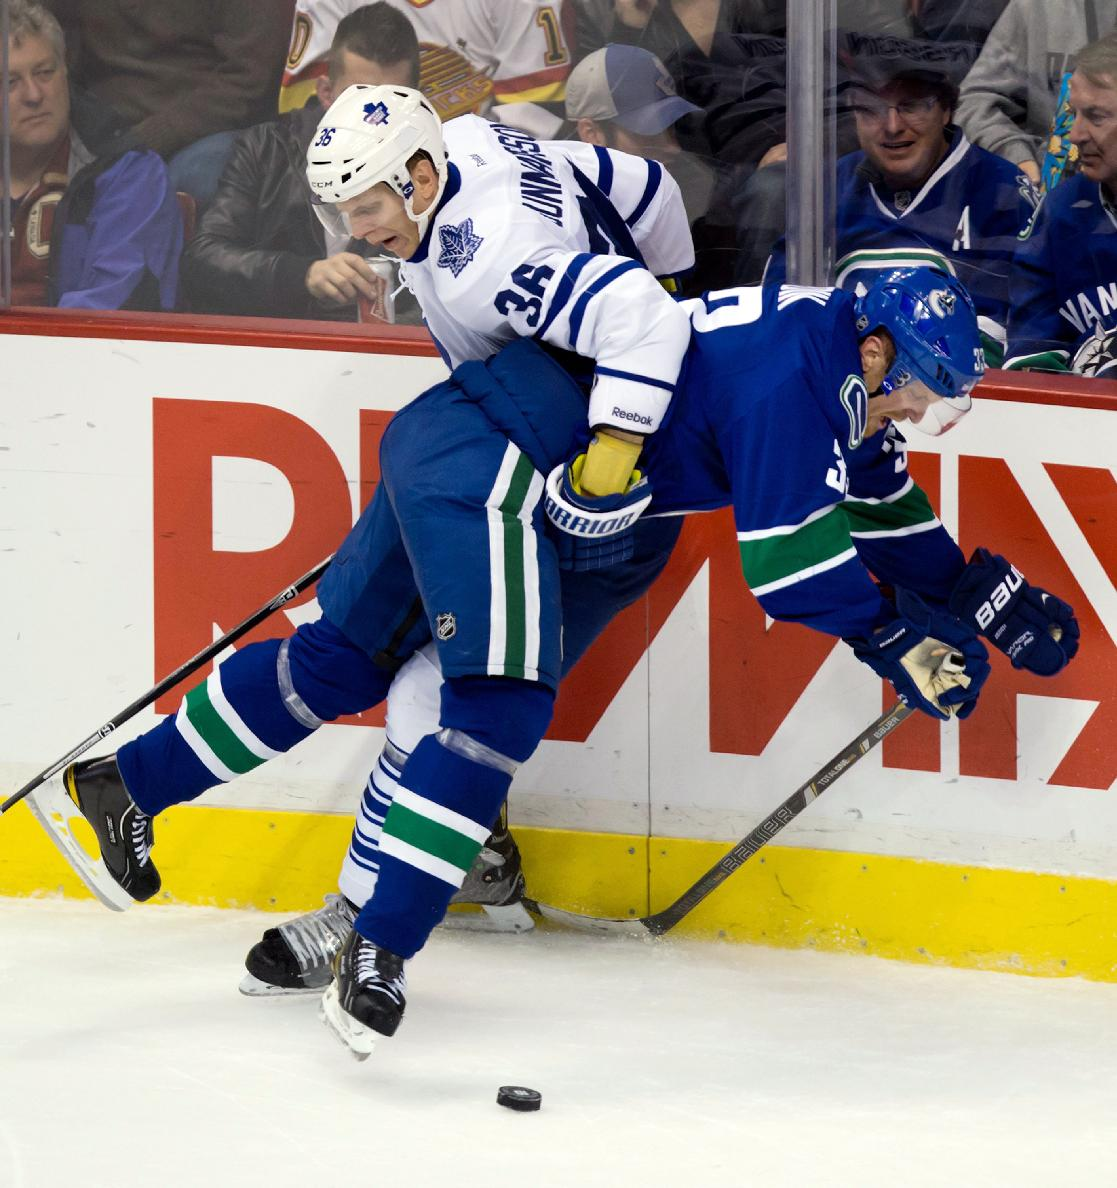 Luongo gets 2nd shutout as Canucks beat Leafs 4-0